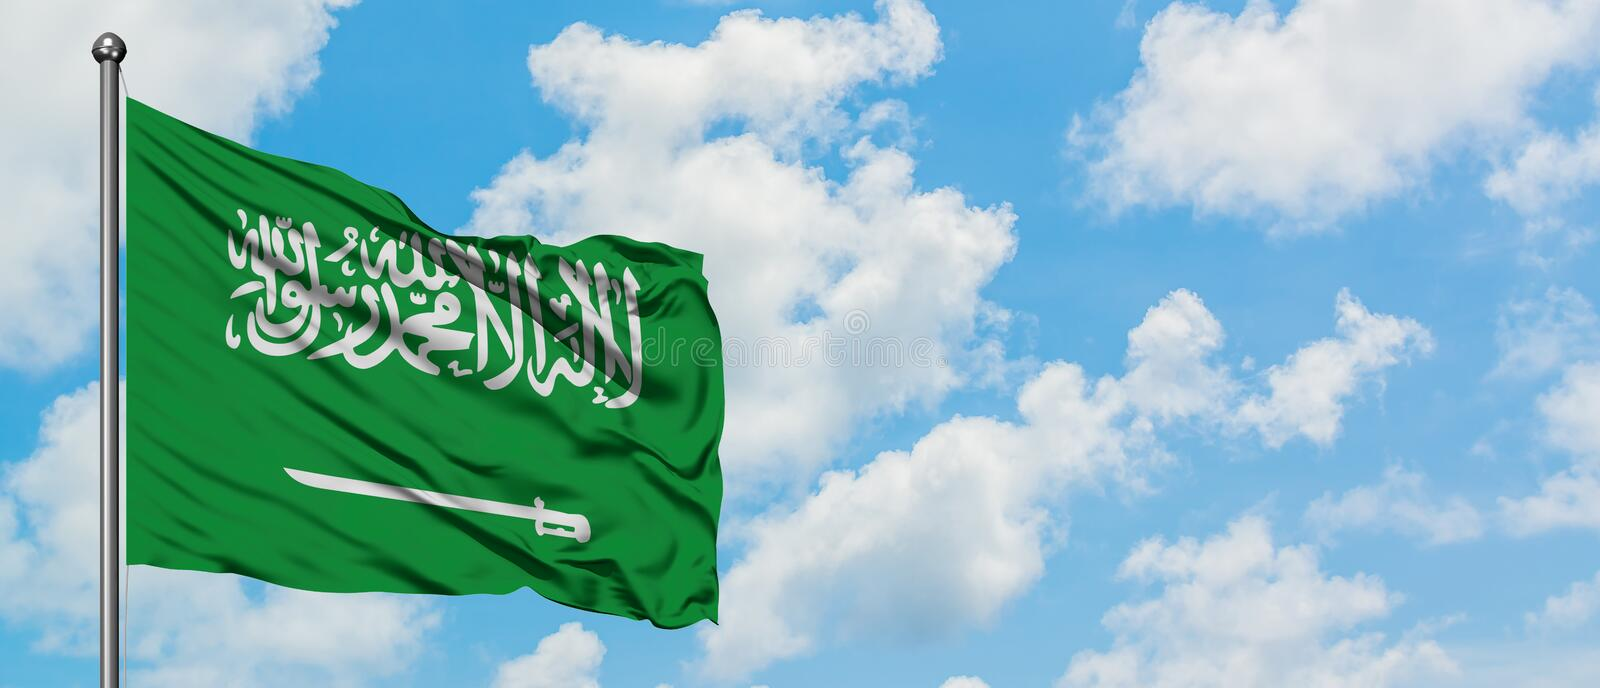 Saudi Arabia flag waving in the wind against white cloudy blue sky. Diplomacy concept, international relations.  stock photography